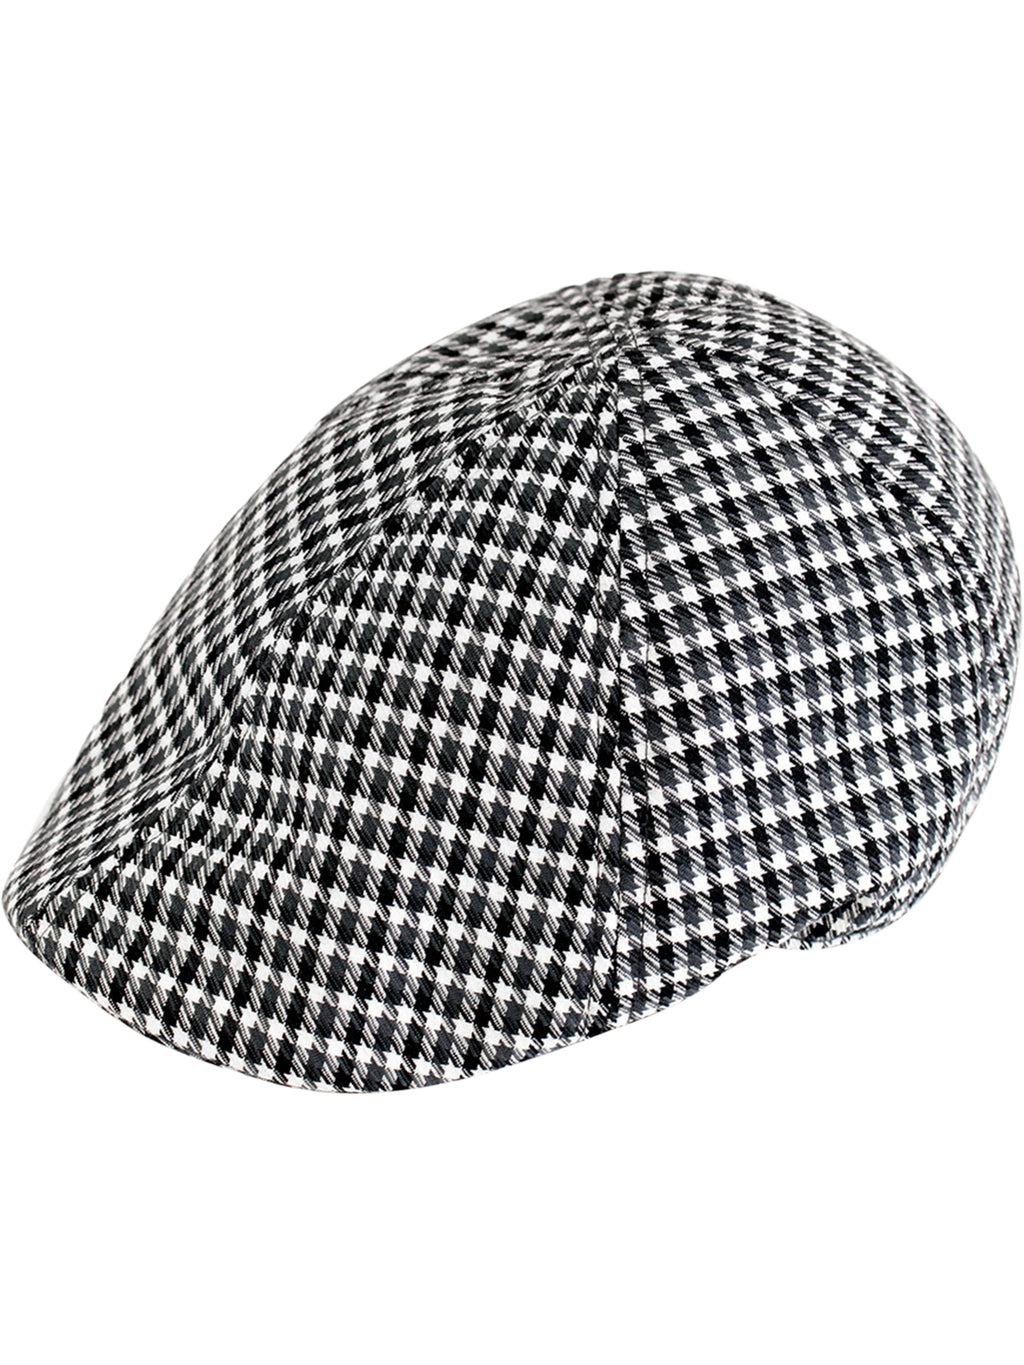 Black & White Houndstooth Duckbill Ivy Cap Hat